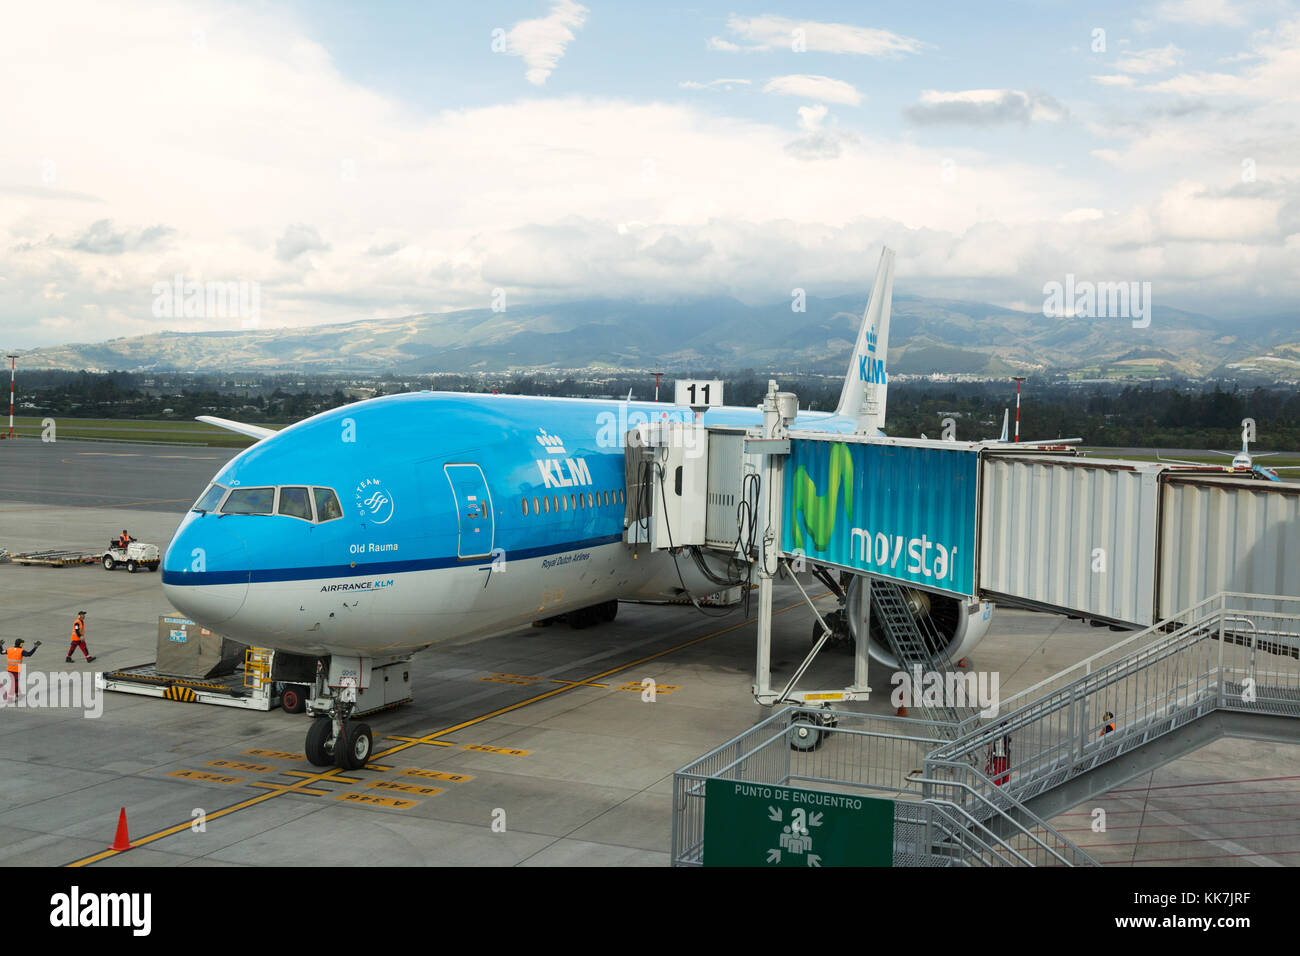 KLM plane at Mariscal Sucre International Airport, Quito, Ecuador, South America - Stock Image